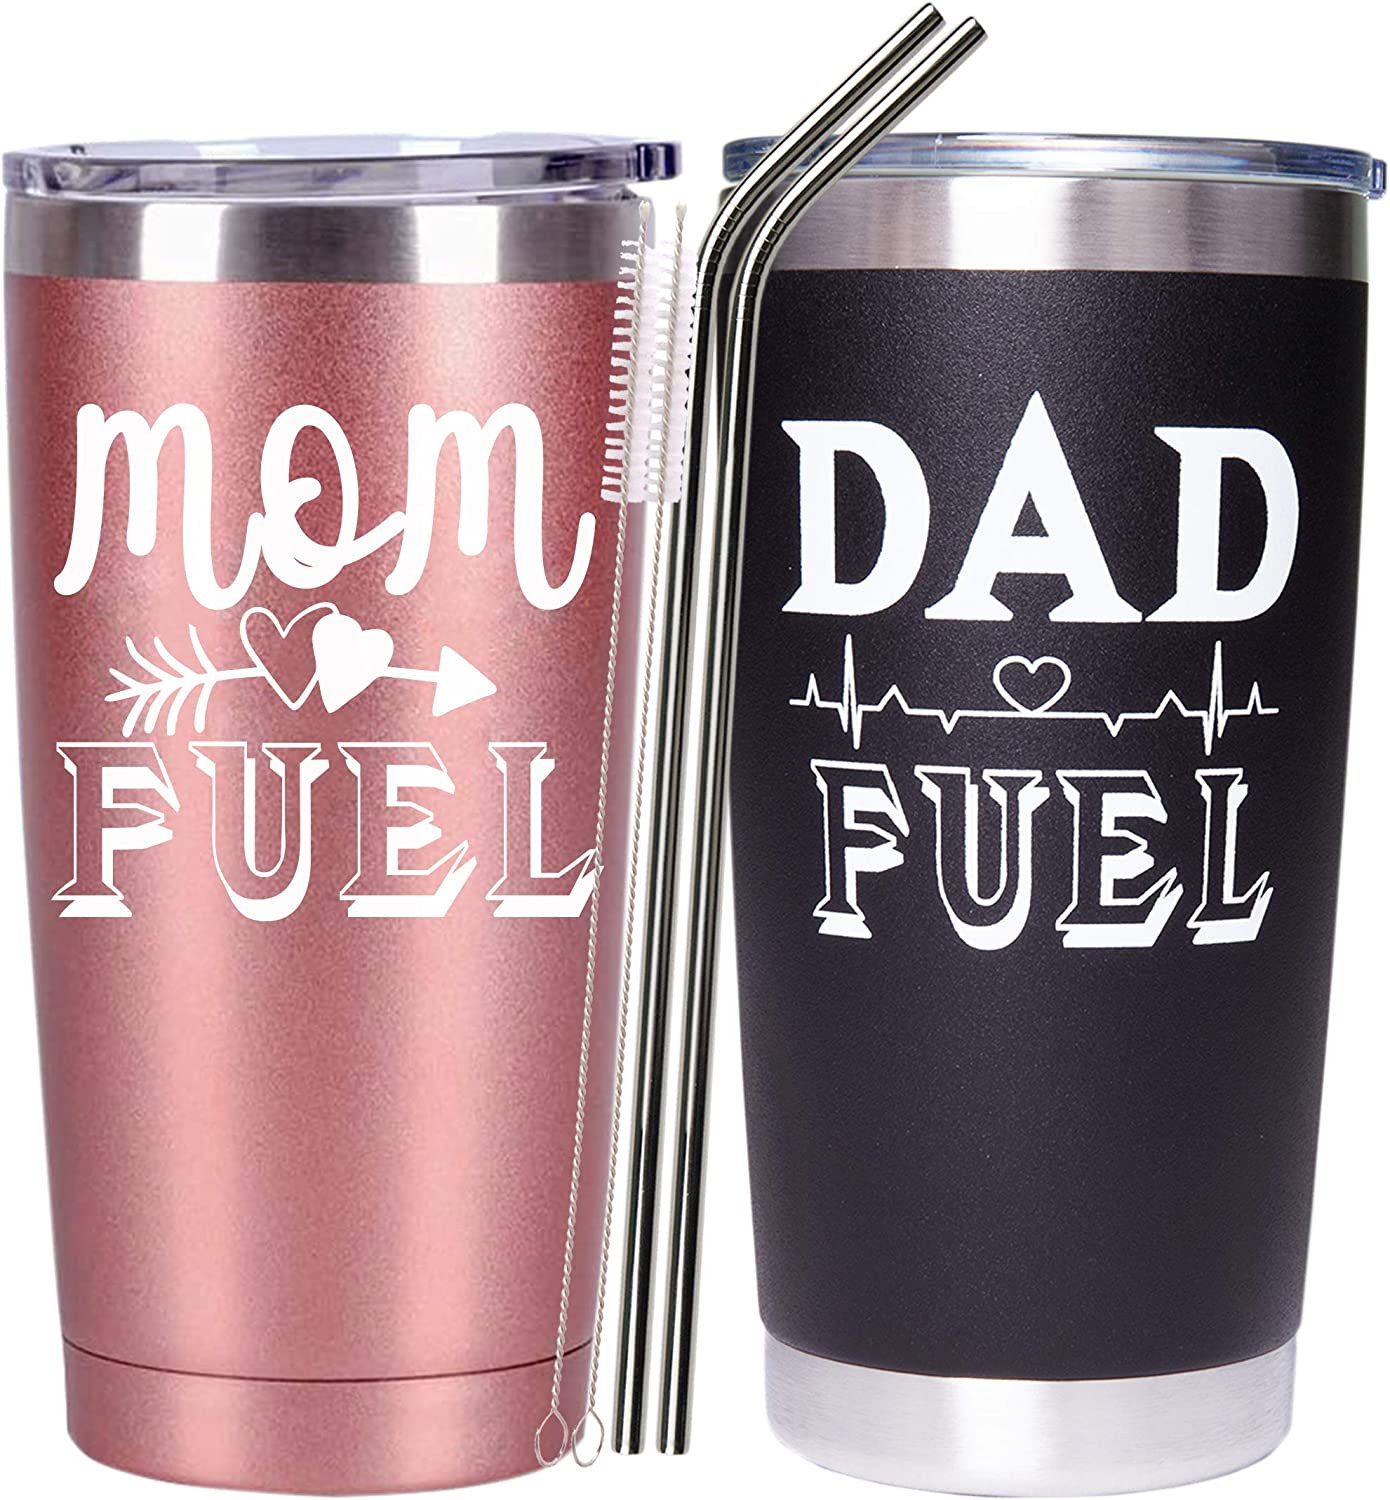 Gift for Dad and Mom, Funny Gifts for Mom and Dad, Mom and Dad Gifts, Mom and Dad Gits for New Parents, Mom and Dad Tumbler Set, Mom and Dad Mugs, Funny Tumbler for Mom and Dad, Mom Dad Gifts Set